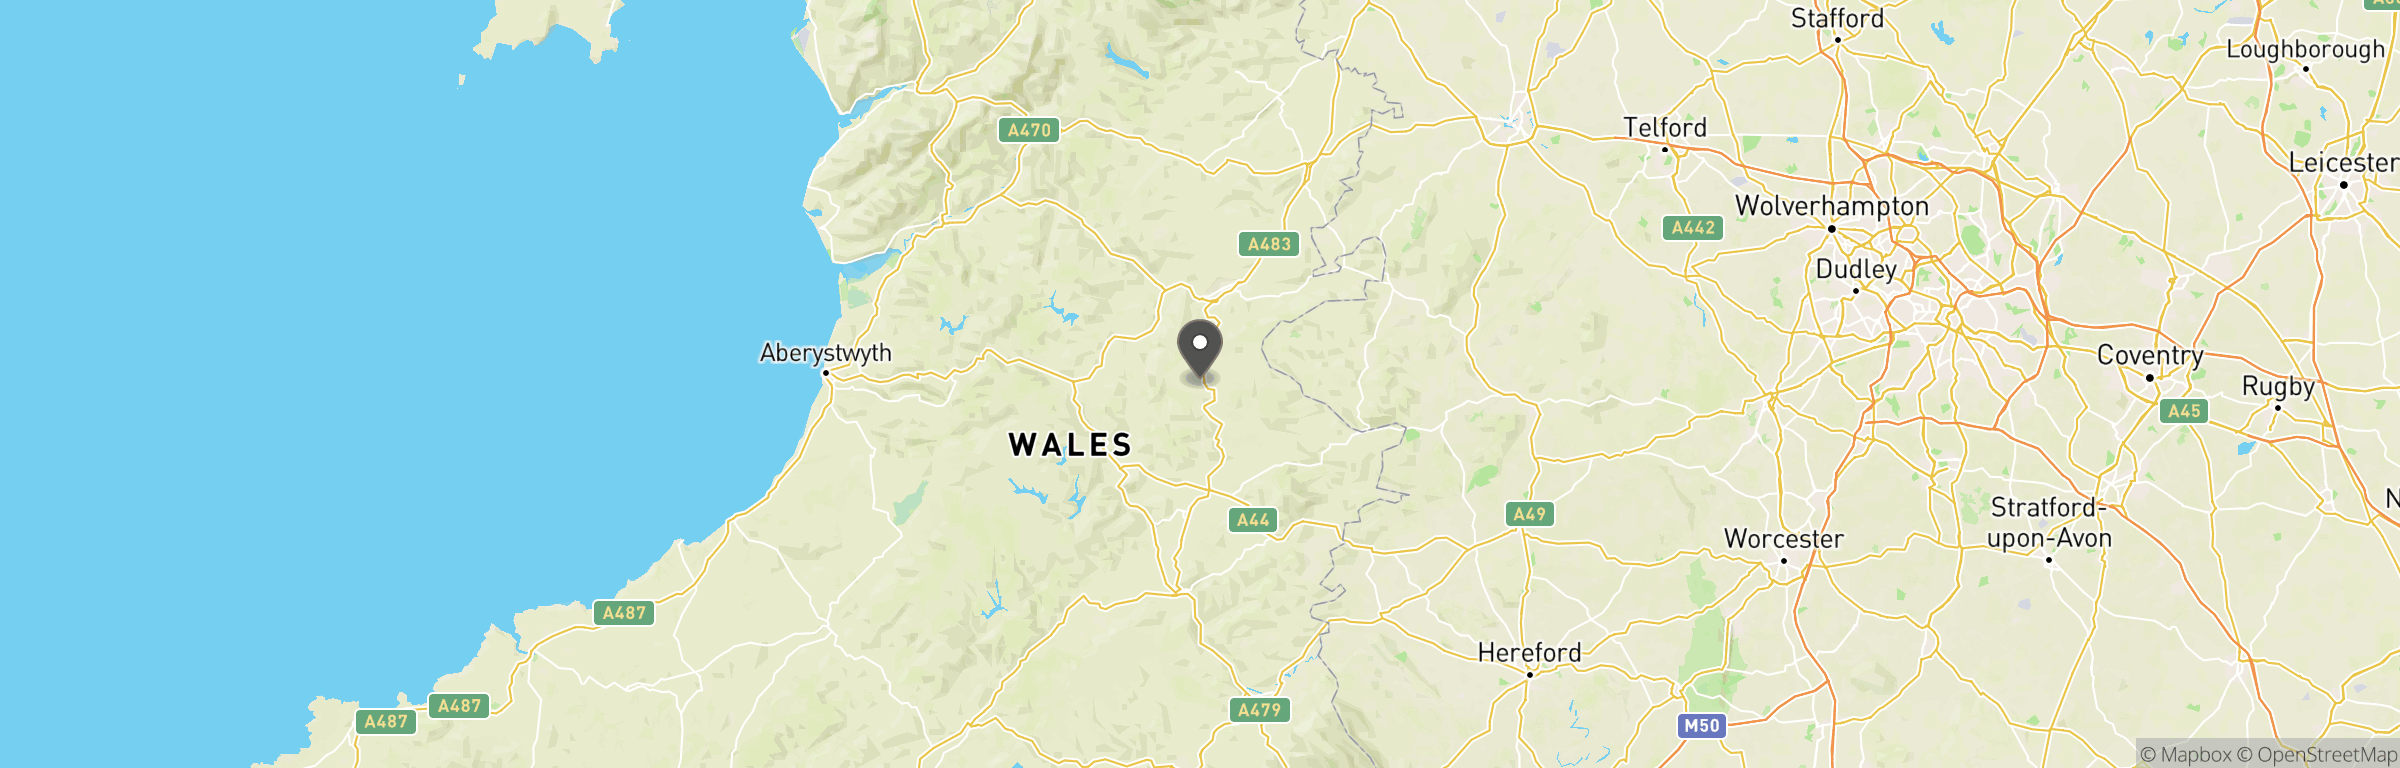 Location map of Midwales Airsoft